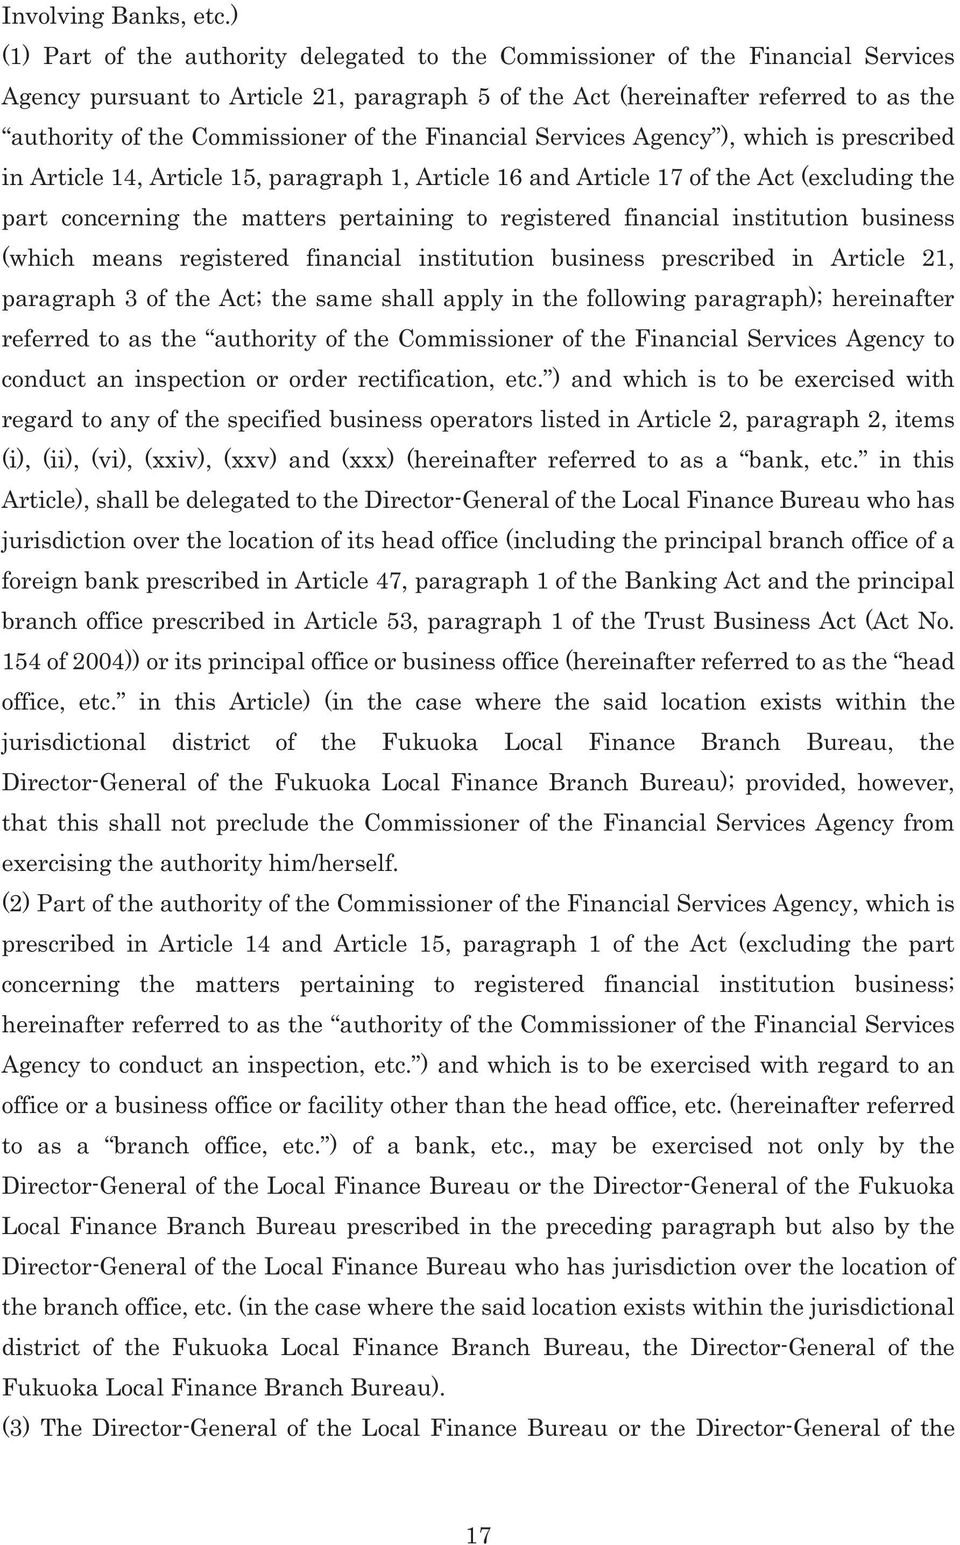 of the Financial Services Agency ), which is prescribed in Article 14, Article 15, paragraph 1, Article 16 and Article 17 of the Act (excluding the part concerning the matters pertaining to